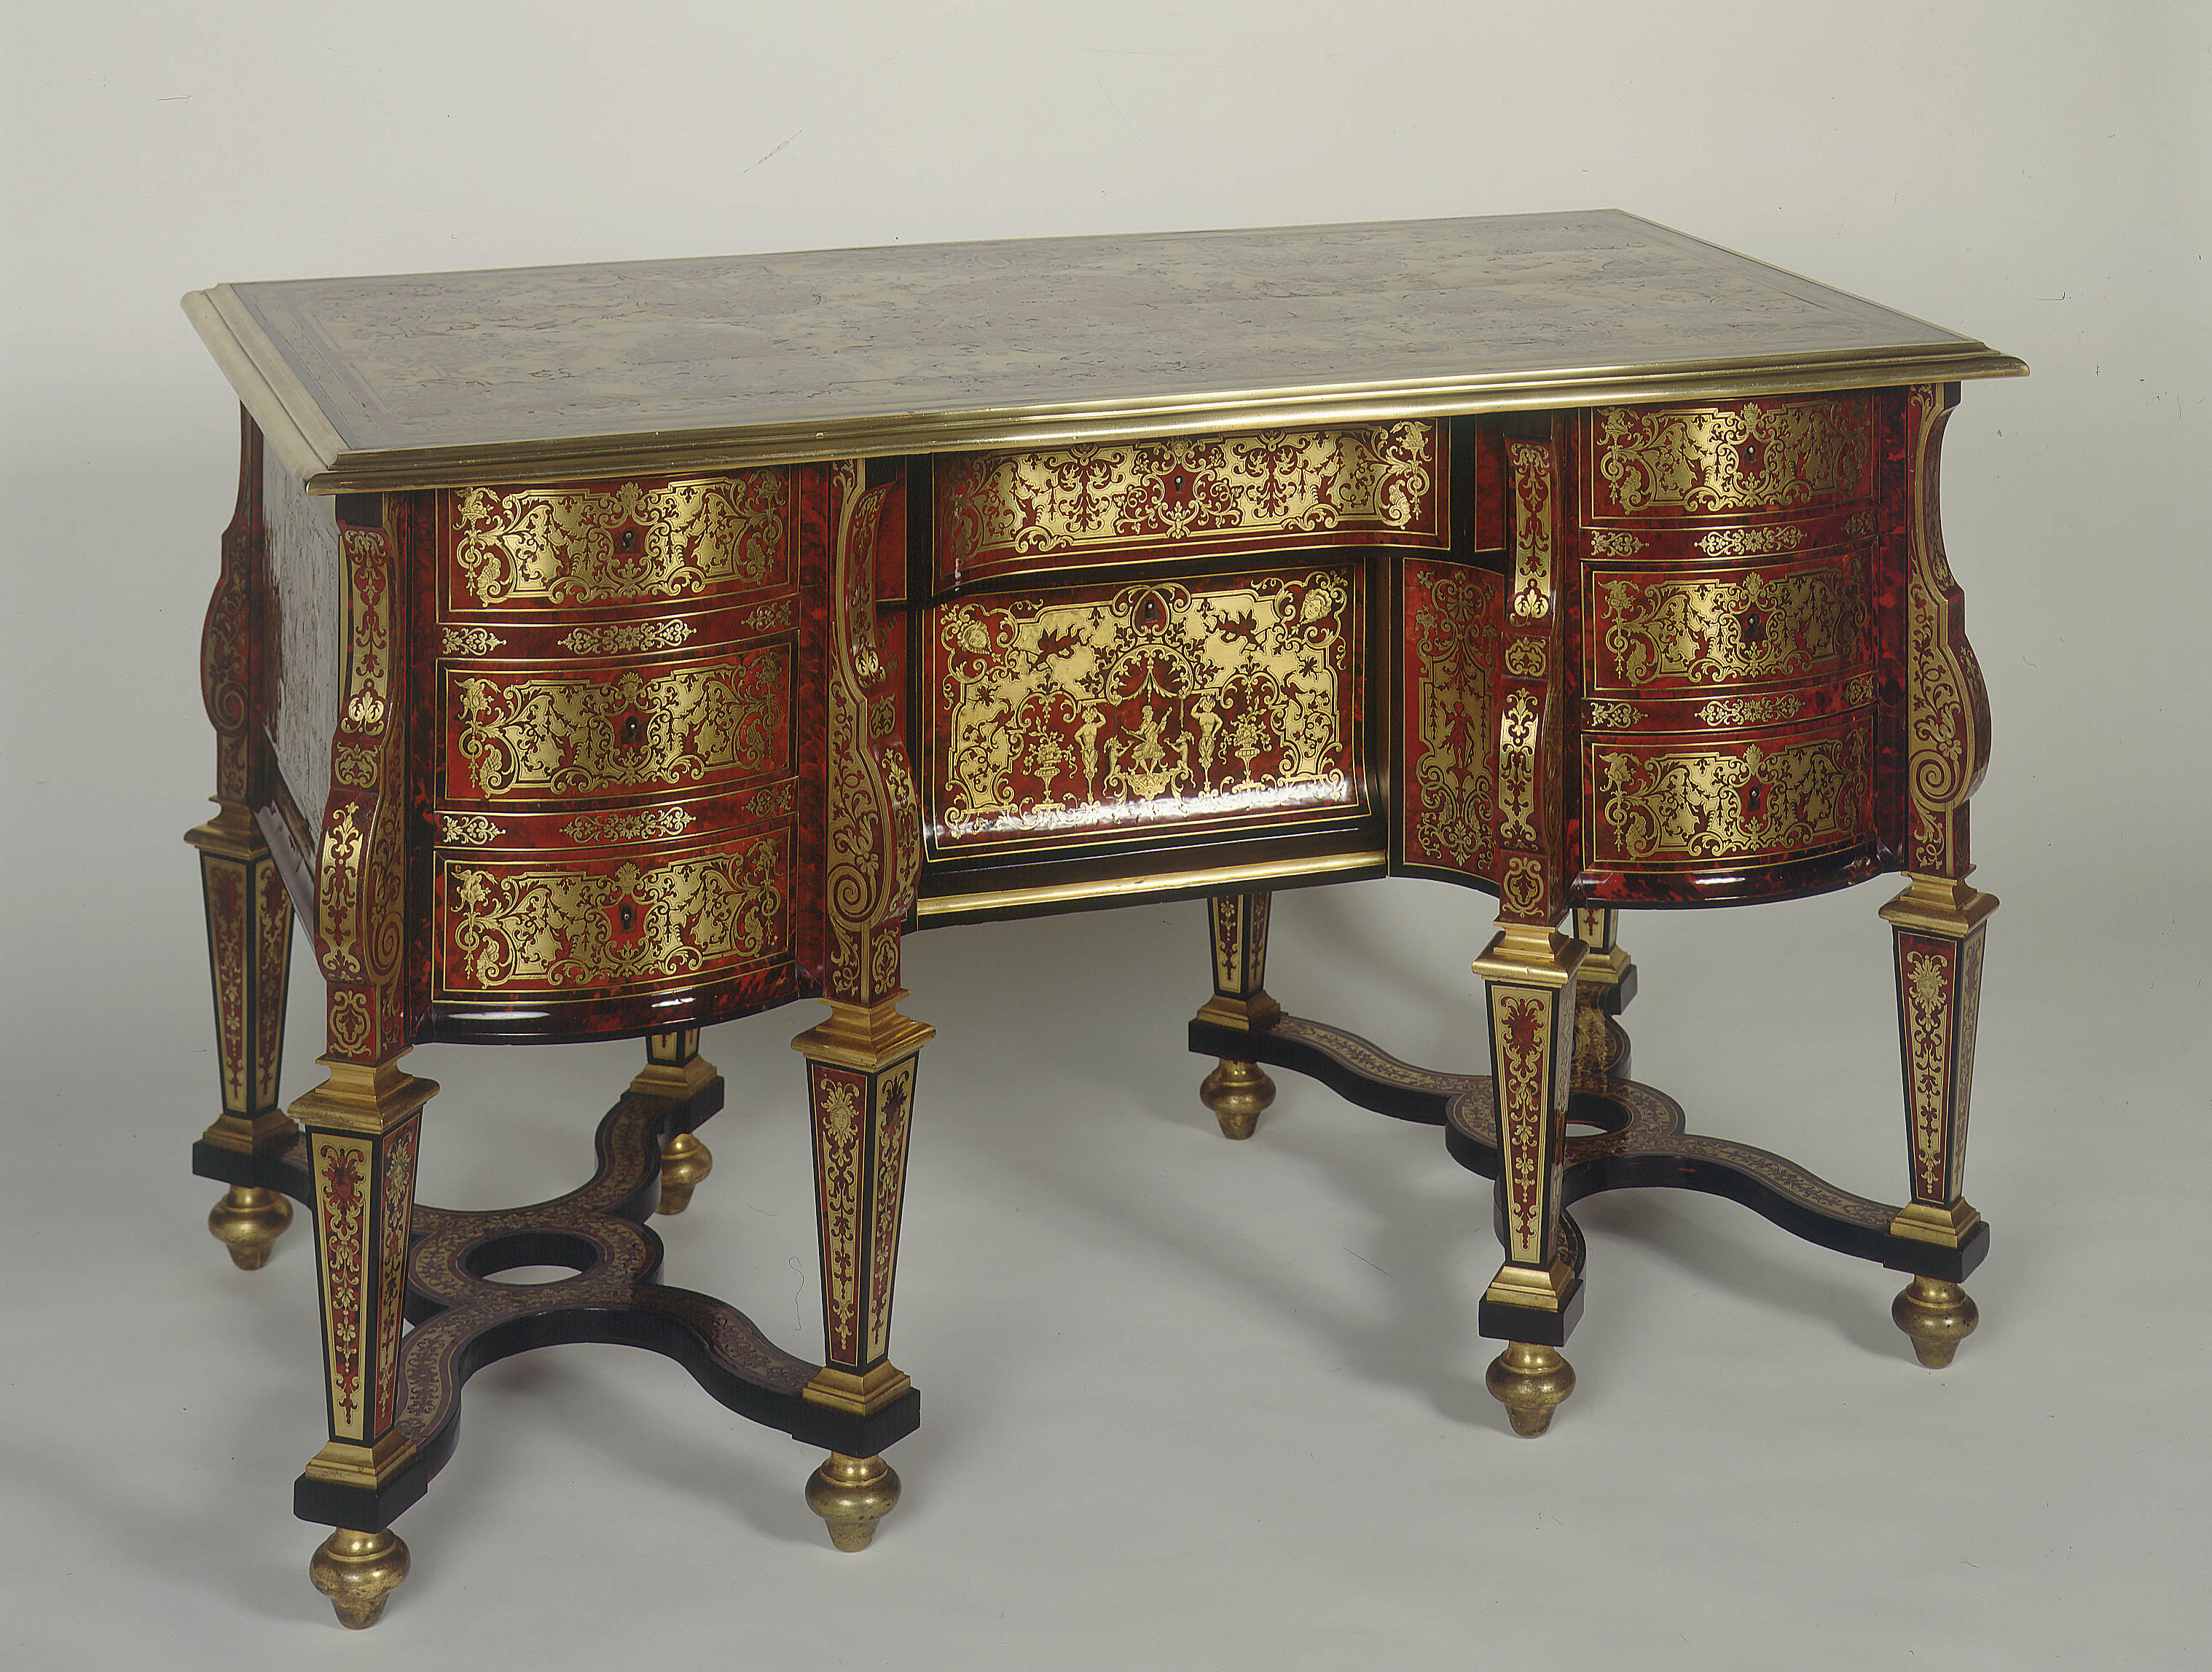 Nicolas Sageot - Mazarin table desk